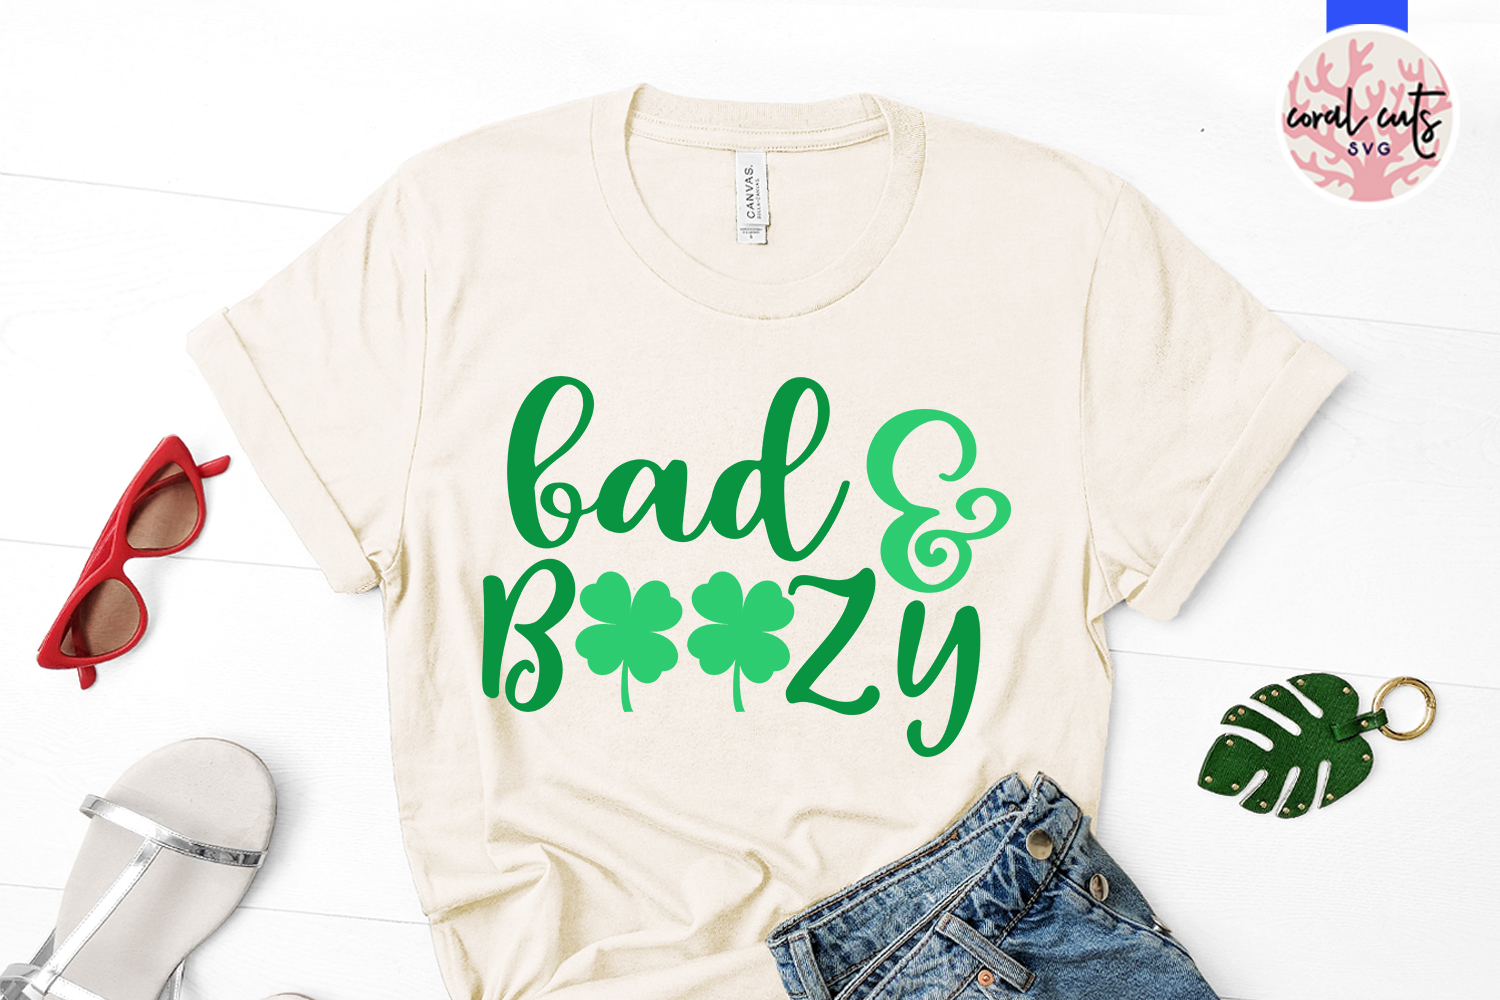 Bad & boozy - St. Patrick's Day SVG EPS DXF PNG example image 2